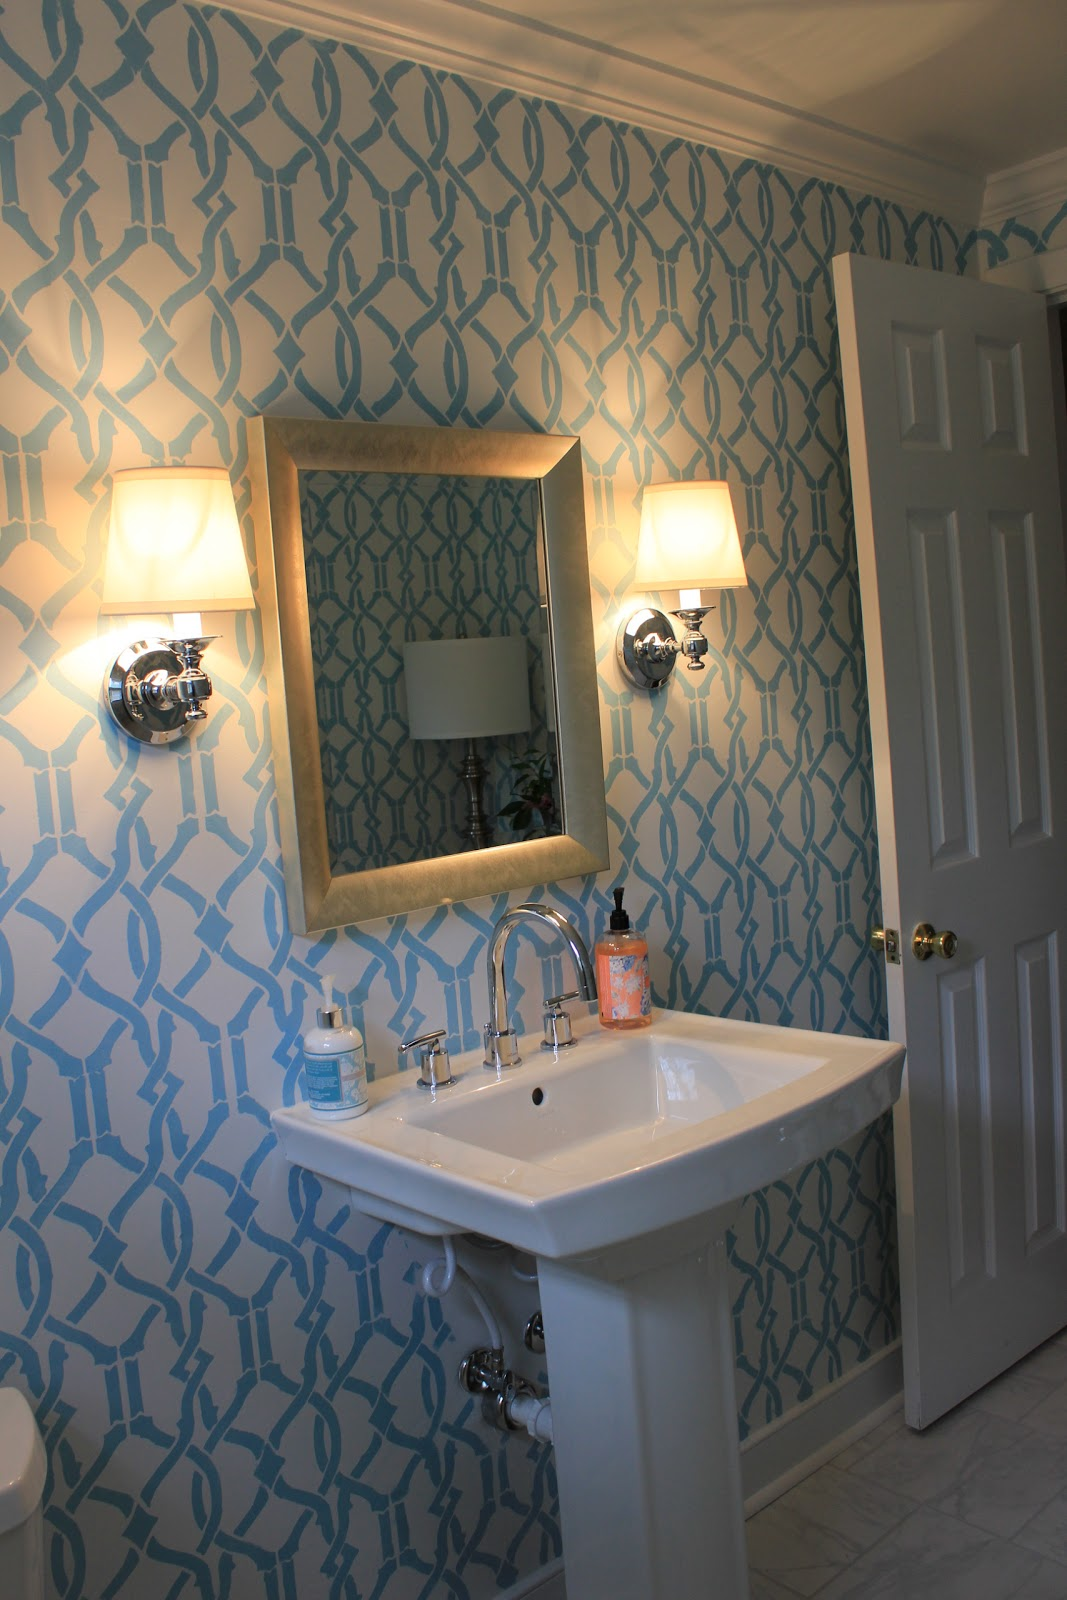 Westhampton diy how to stencil a room powder room remodel - Powder room remodel ideas ...